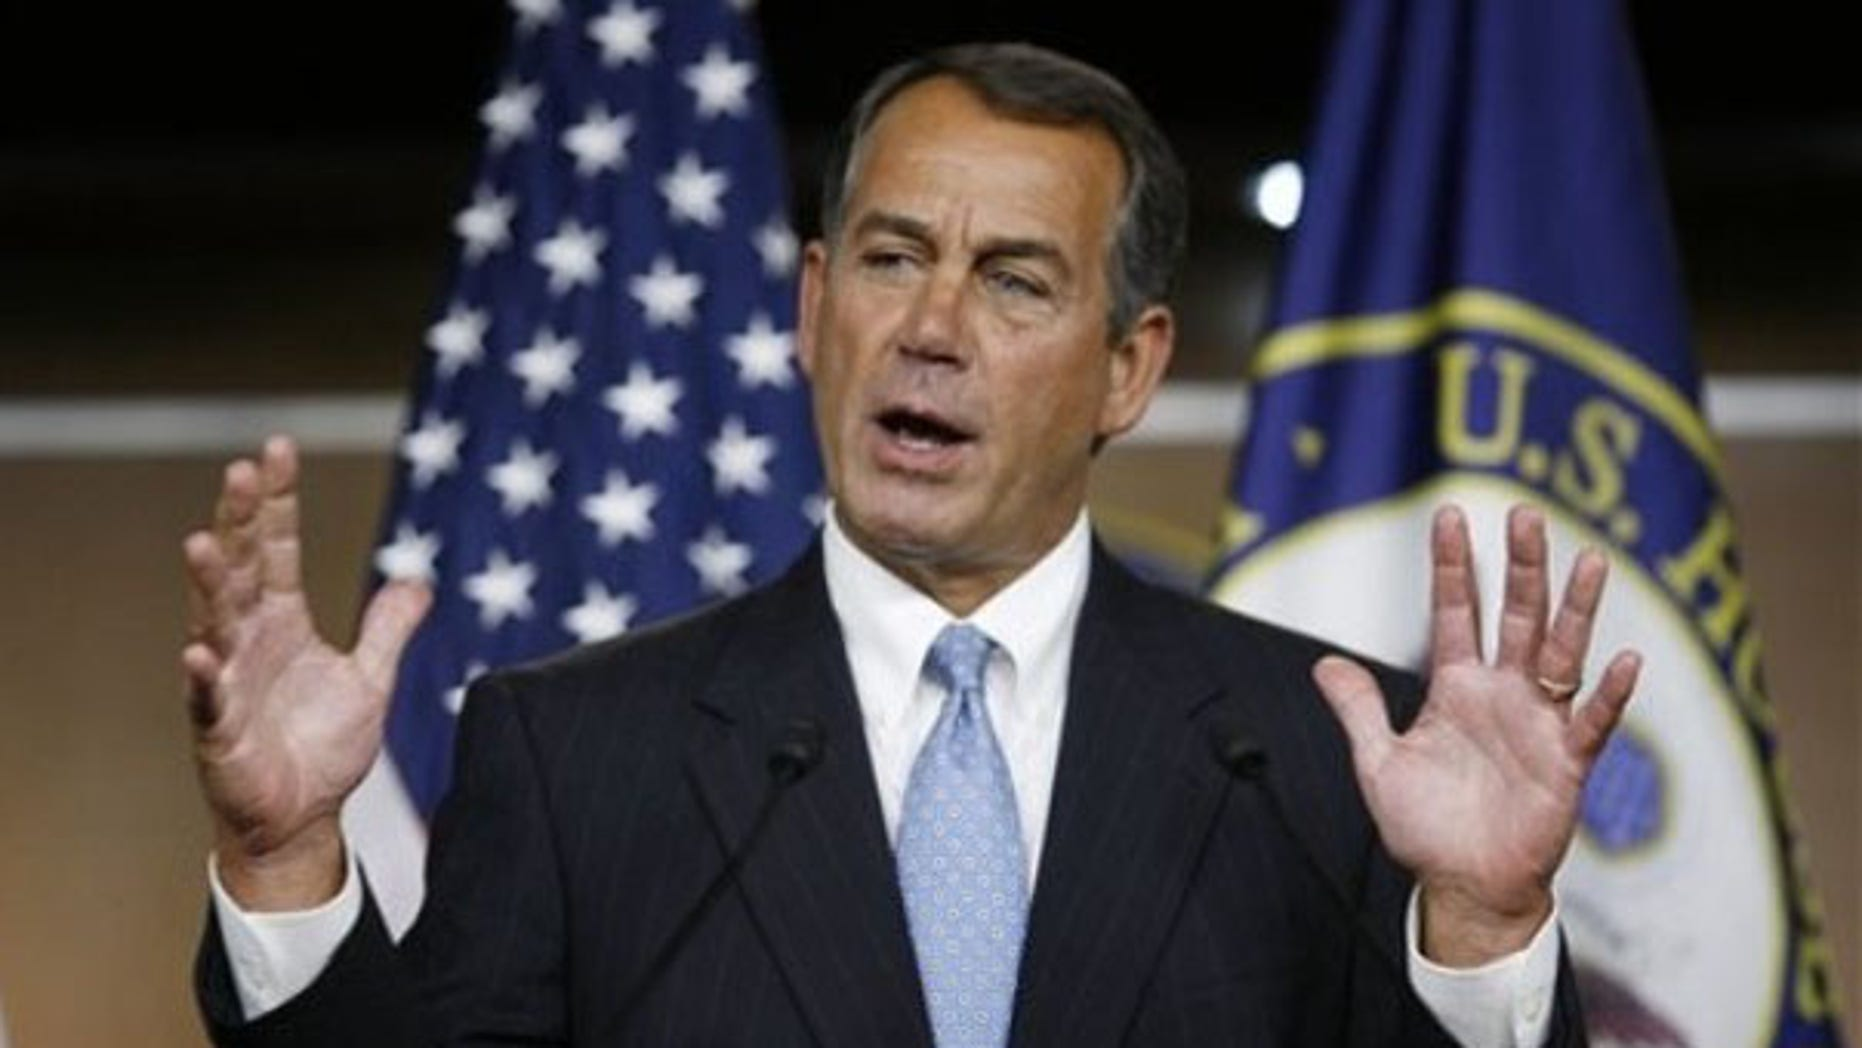 Jan. 21: House Minority Leader John Boehner speaks during a news conference on Capitol Hill. (AP Photo)